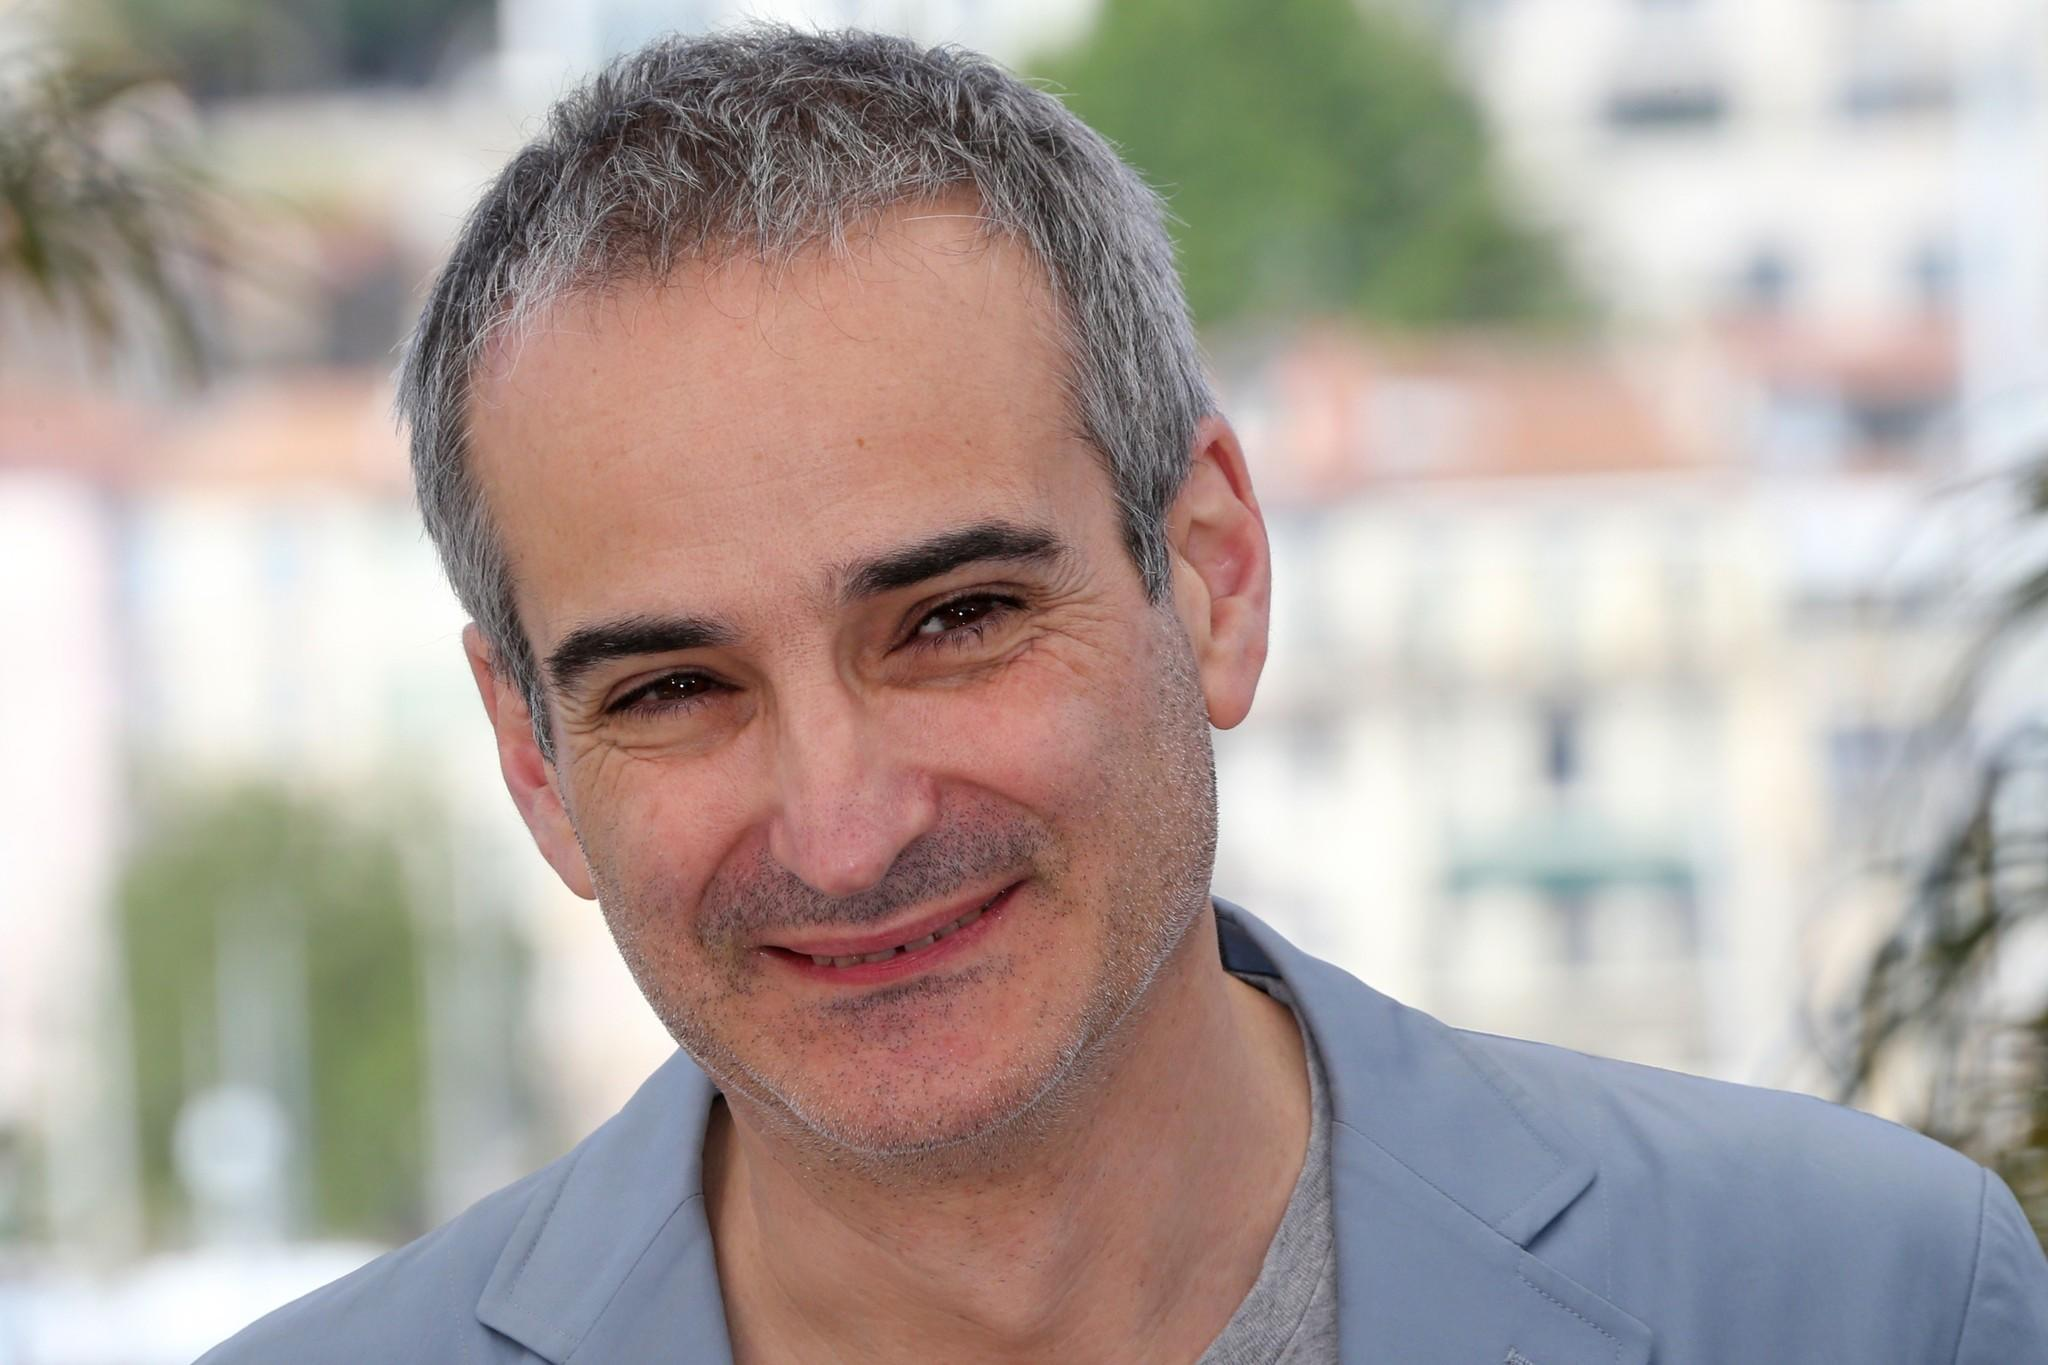 """French director Olivier Assayas poses at the 67th edition of the Cannes Film Festival on May 23. The director will film """"Idol's Eye"""" in Chicago this fall with Robert De Niro and Robert Pattinson."""